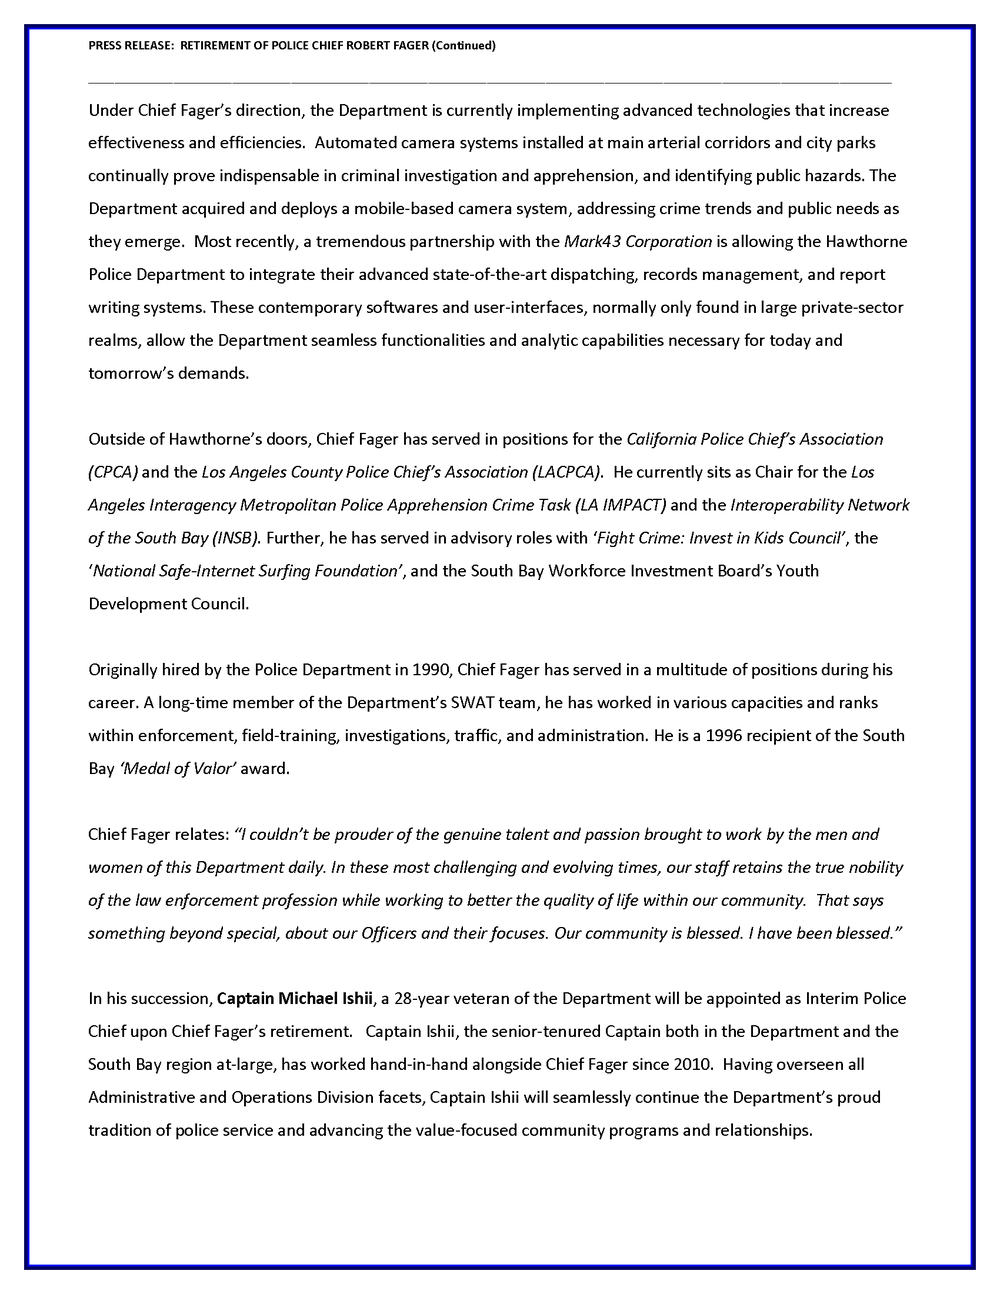 Chief Fager Retirement_Press Release_Page_2.png